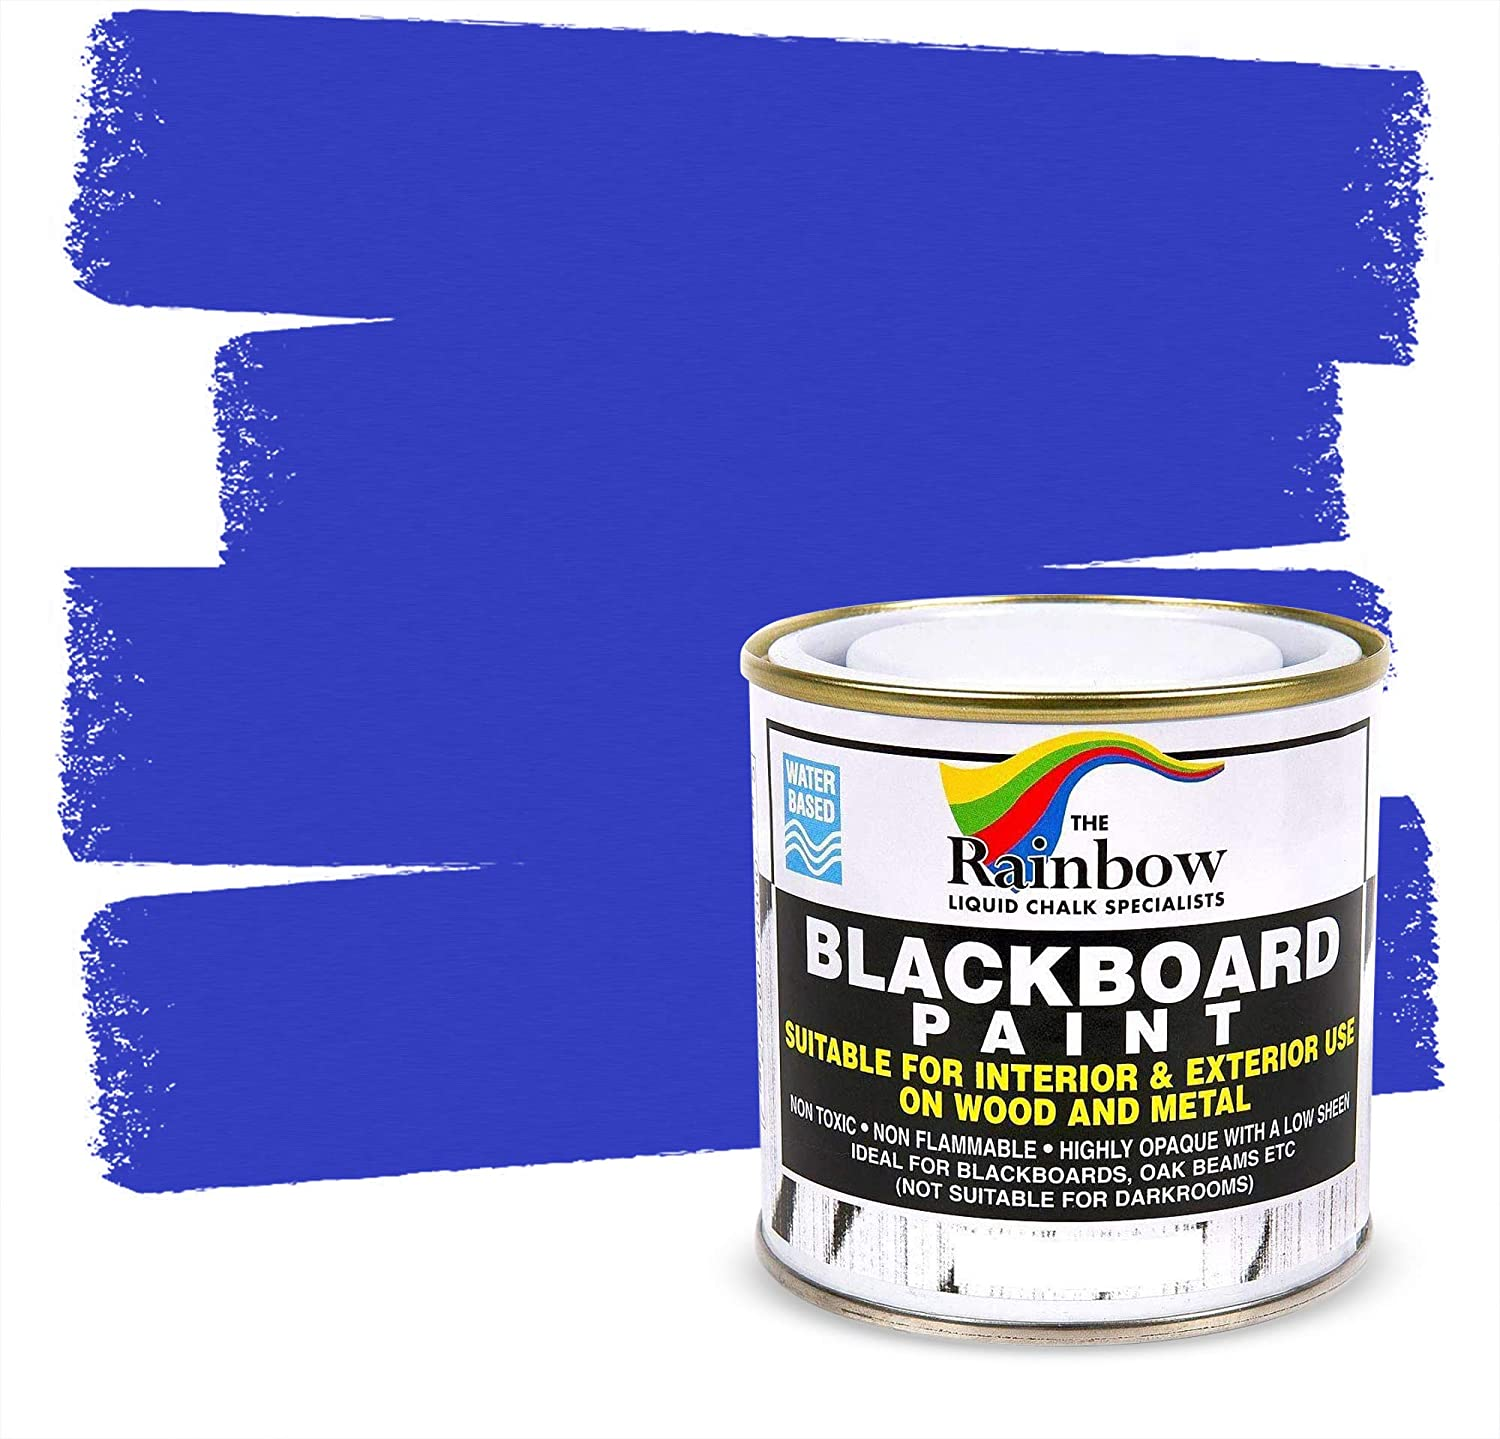 Chalkboard Blackboard Paint - Blue 8.5oz - Brush on Wood, Metal, Glass, Wall, Plaster Boards Sign, Frame or Any Surface. Use with Chalk Pen Wet Erase, Safe and Non-Toxic - Matte Finish